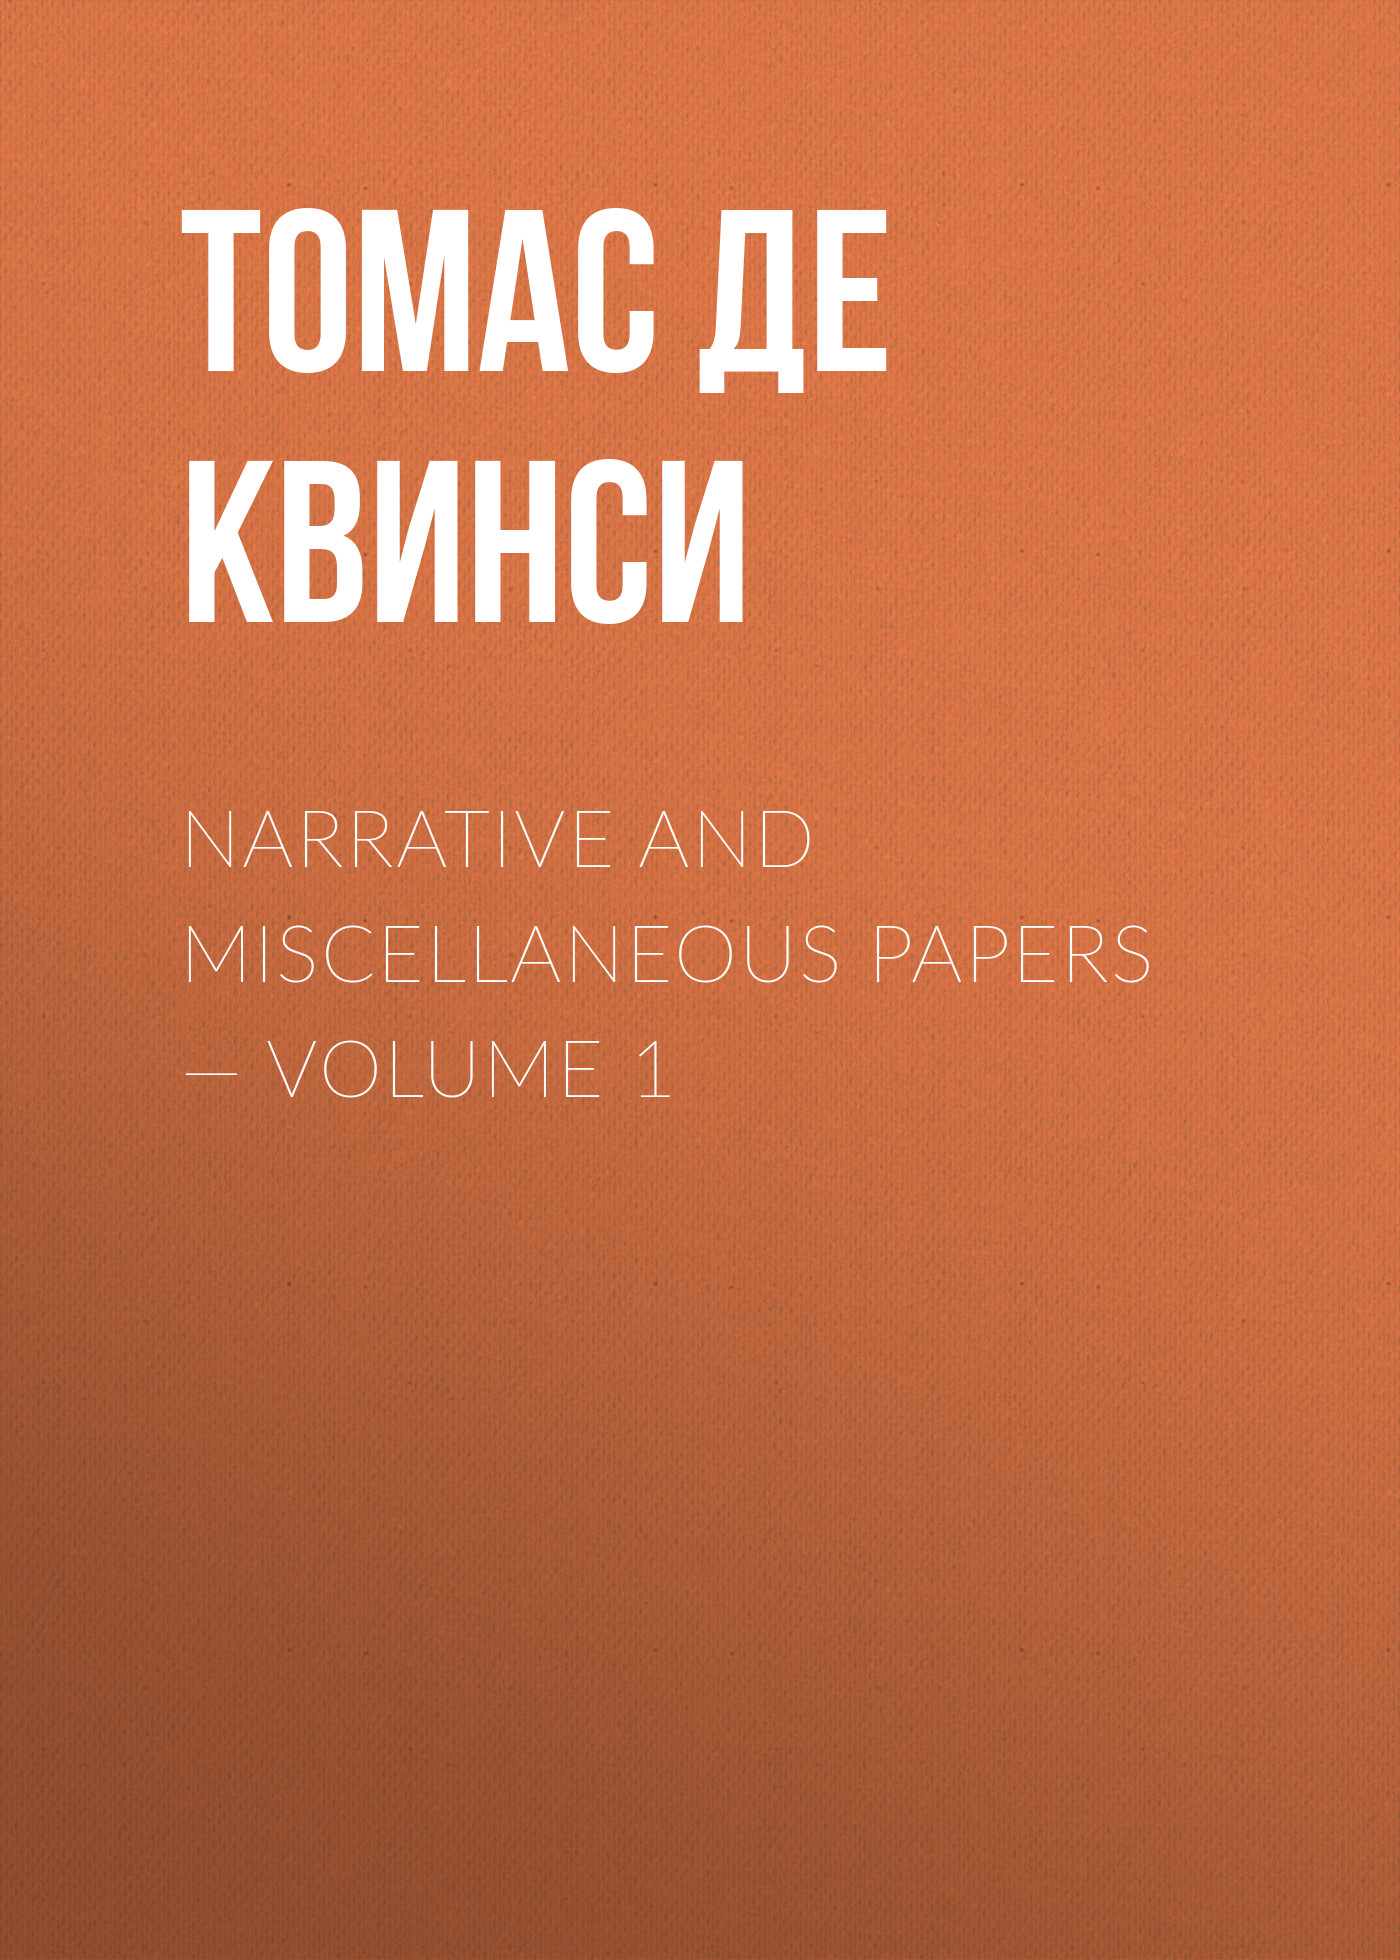 Фото - Томас де Квинси Narrative and Miscellaneous Papers — Volume 1 m l abbé trochon greek examination papers in miscellaneous grammar and idioms